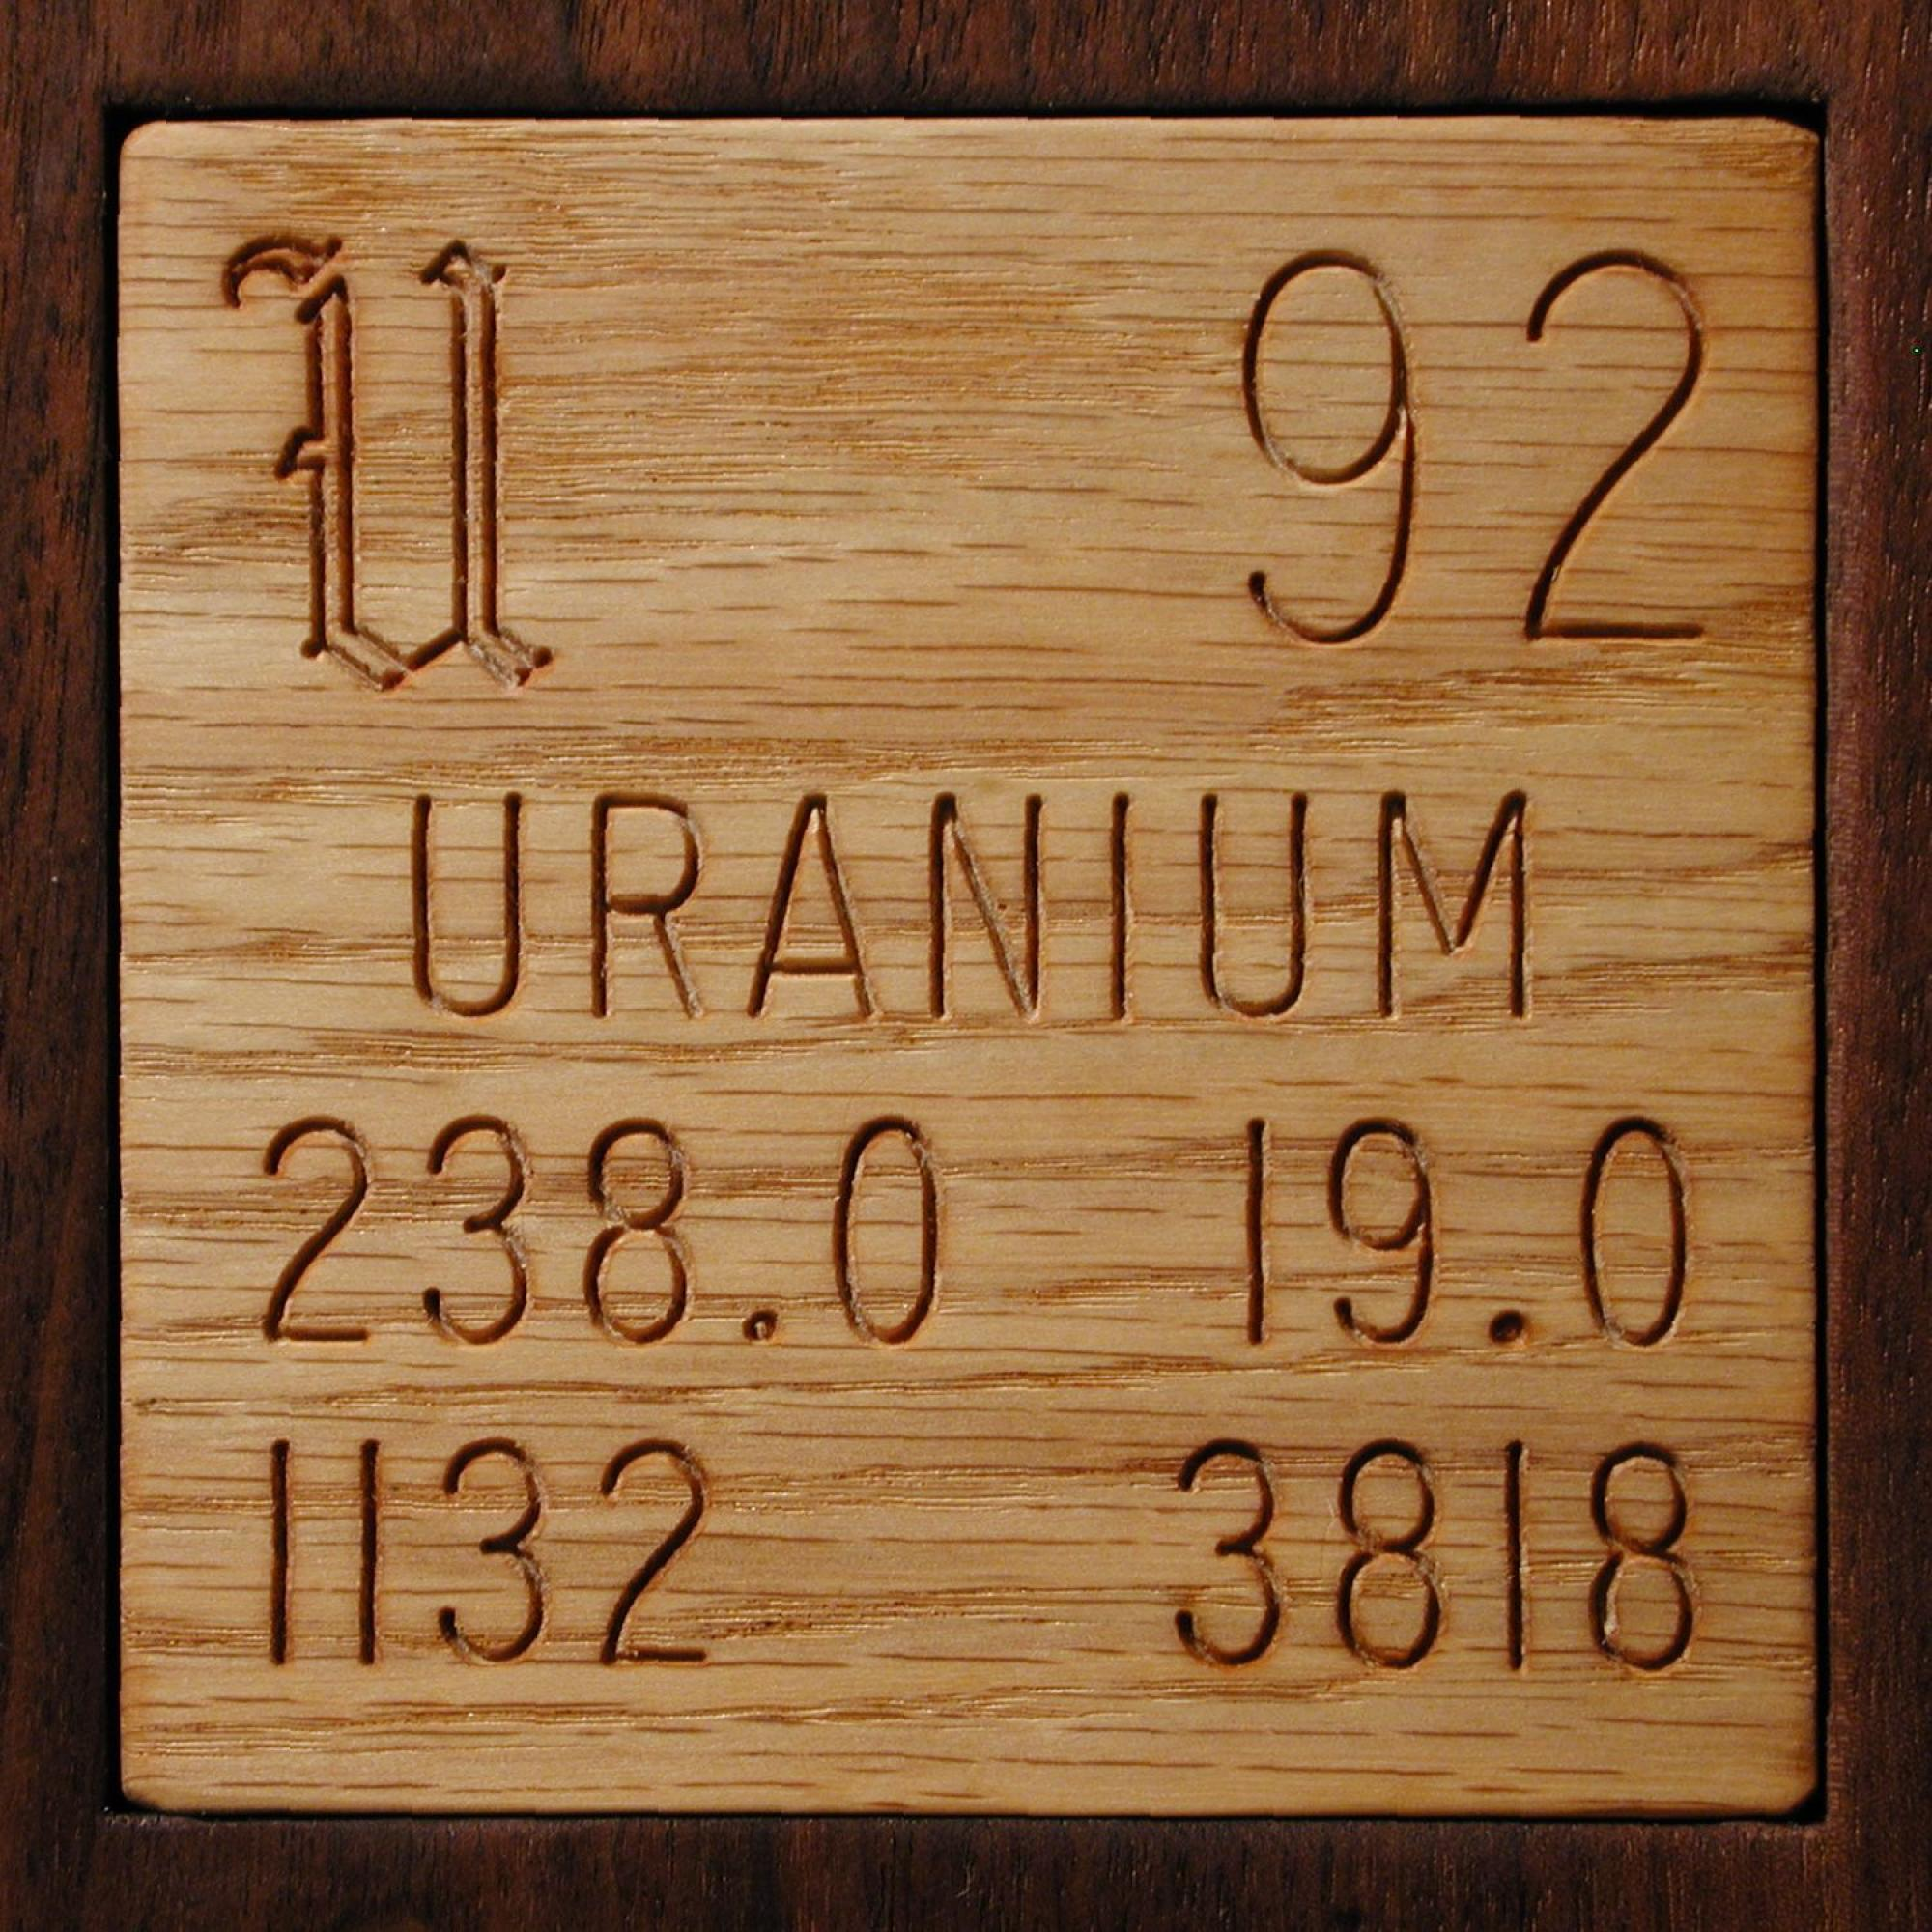 facts pictures stories about the element uranium in the periodic table - Periodic Table Of Elements Uranium